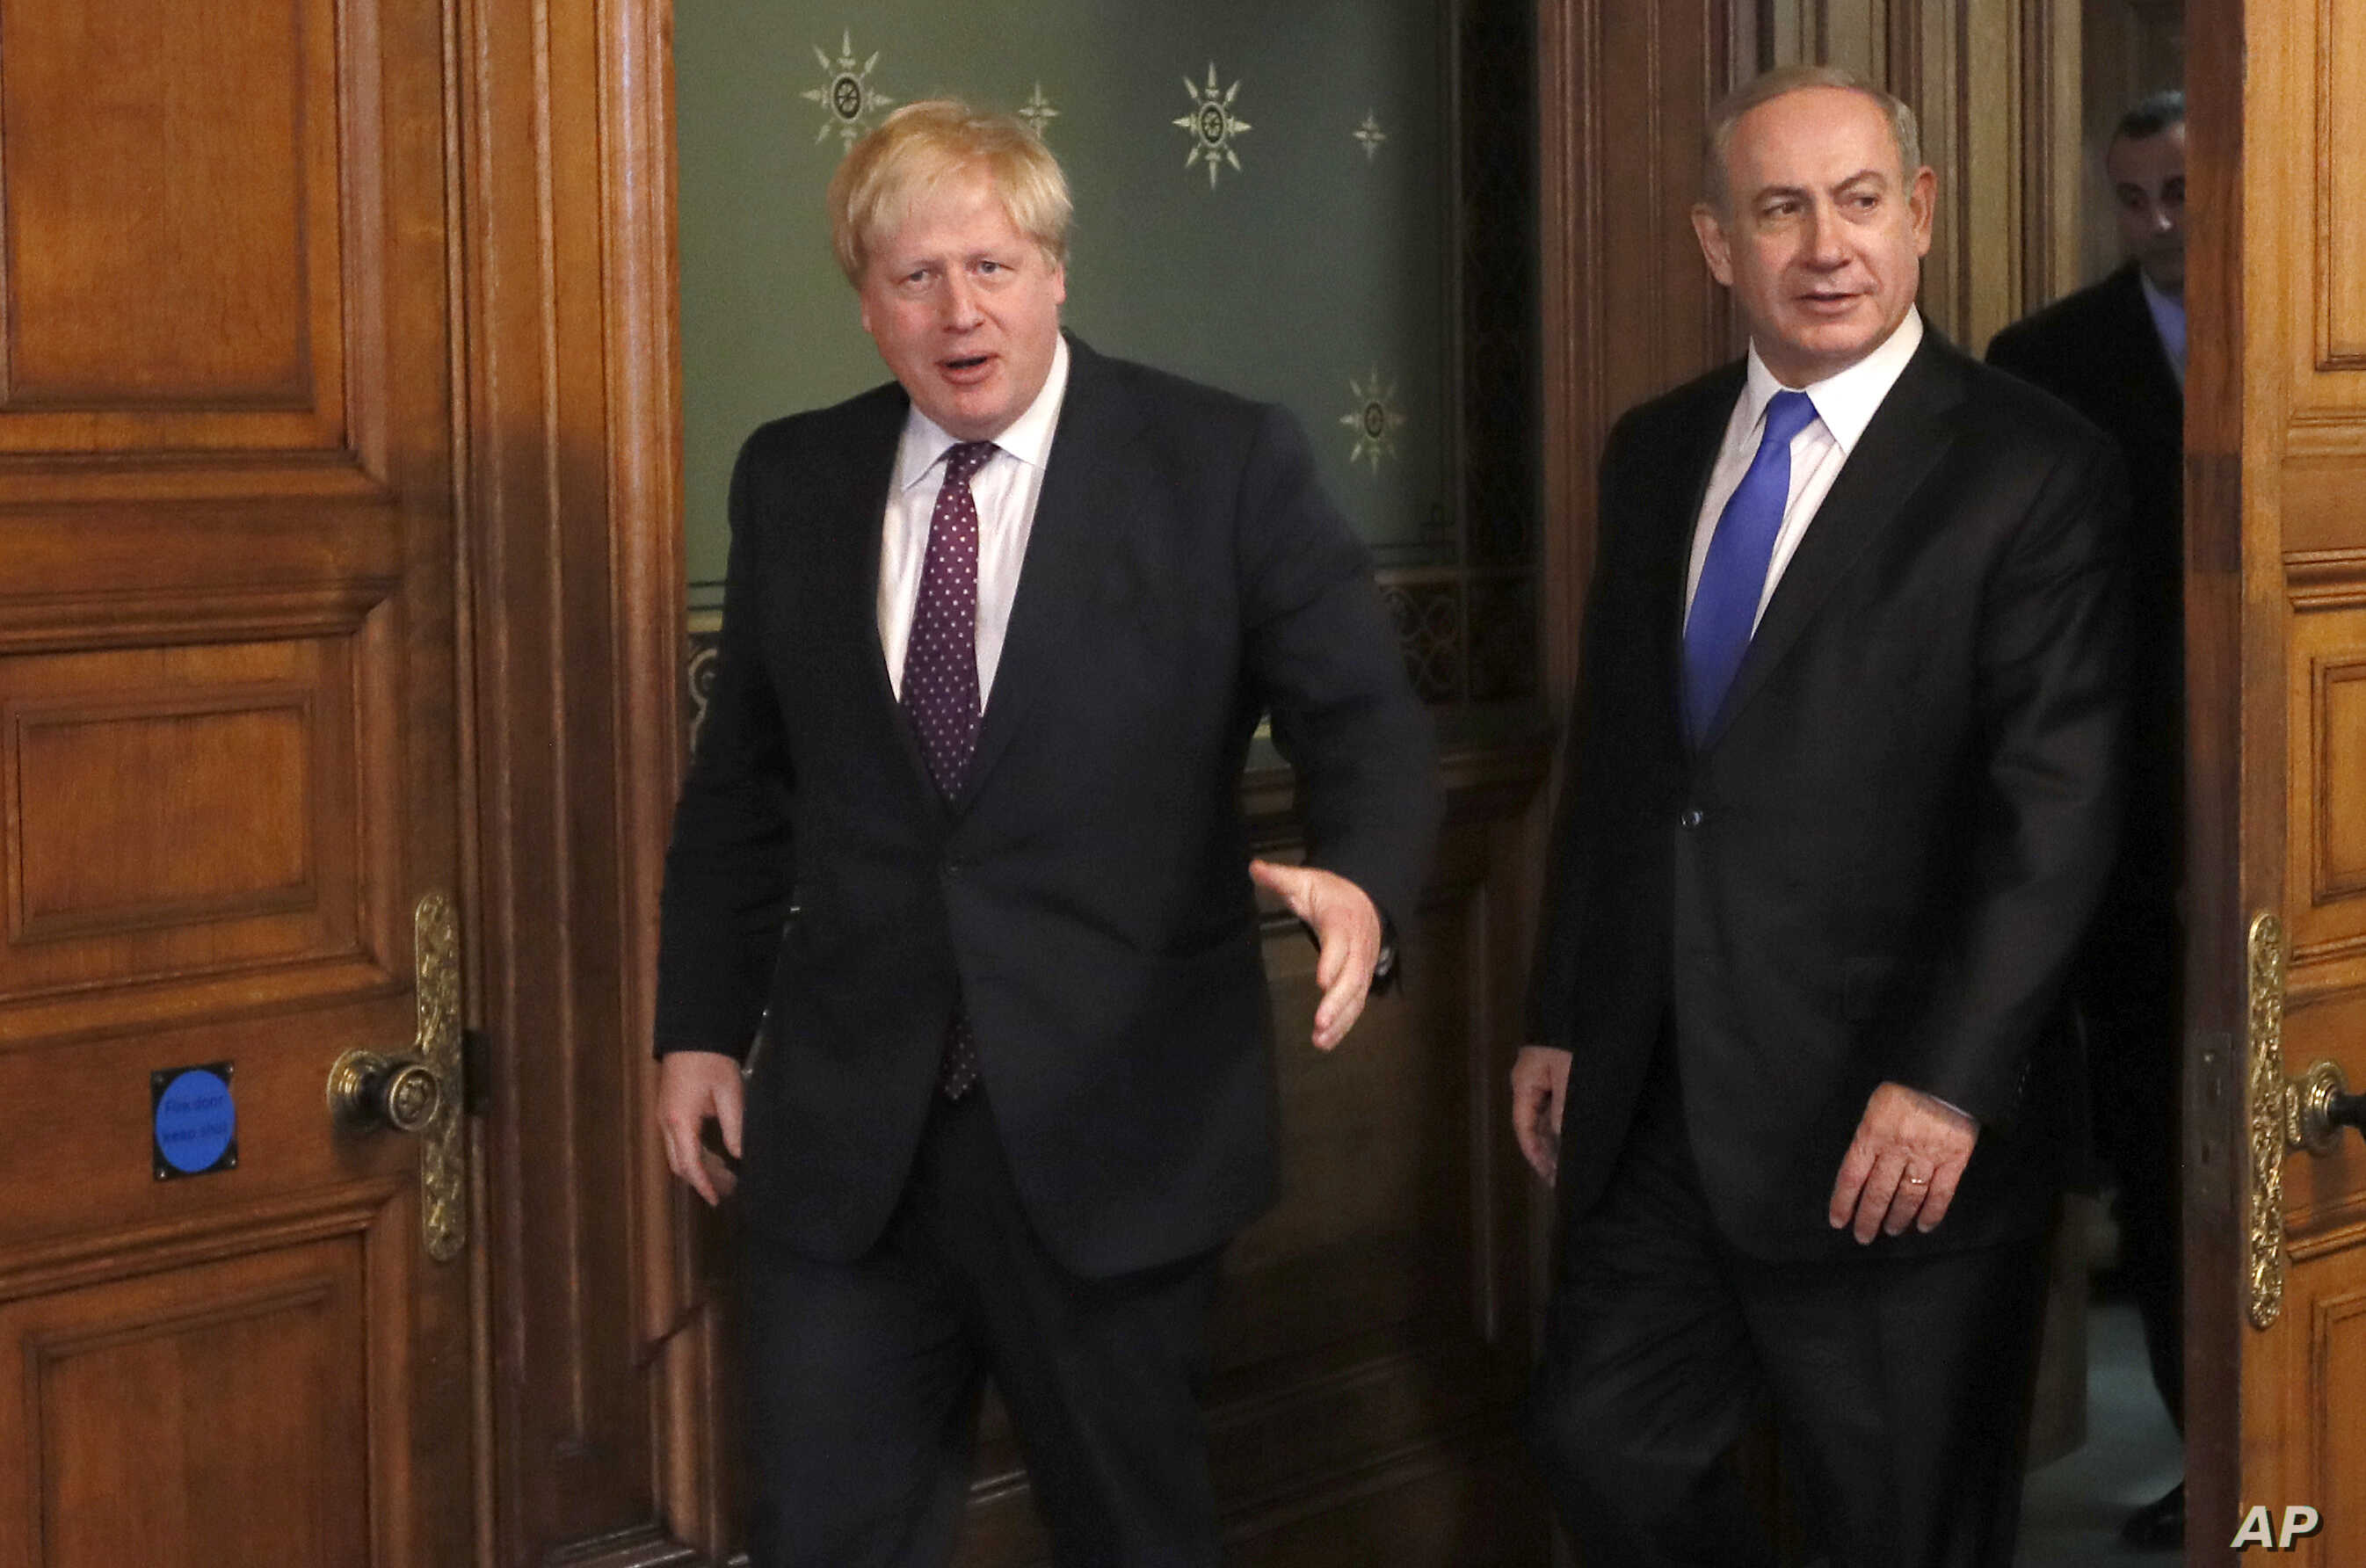 Britain's Foreign Secretary Boris Johnson, left, greets Prime Minister Benjamin Netanyahu of Israel at the Foreign Office in London, Feb. 6, 2017.